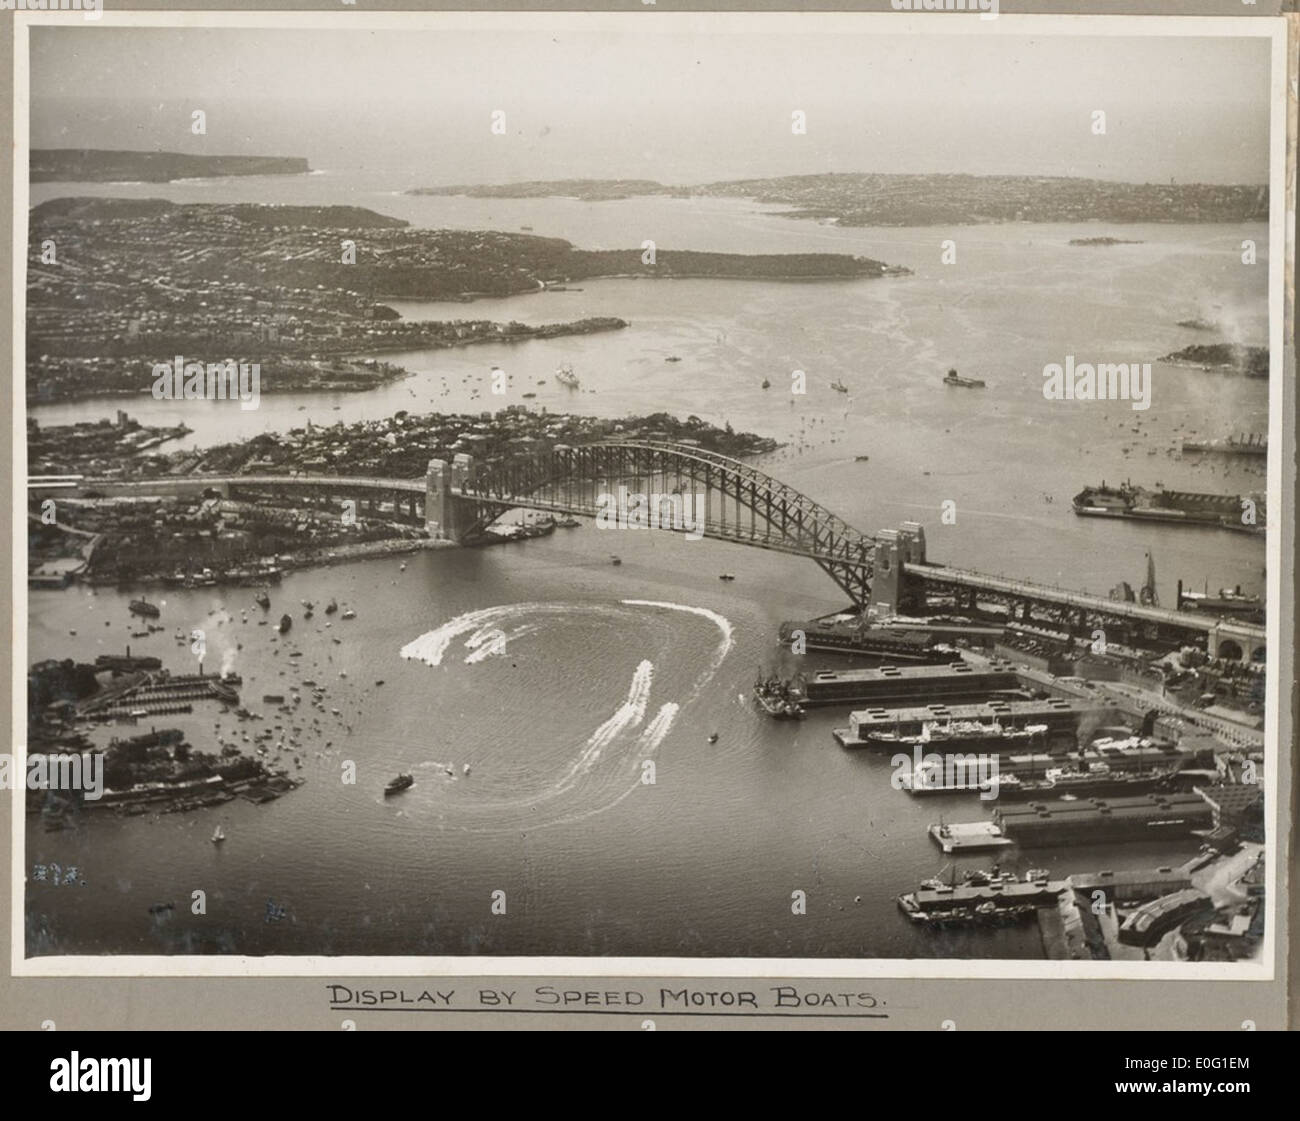 Sydney Harbour Bridge and display of speed boats, 19 March 1932 - Stock Image